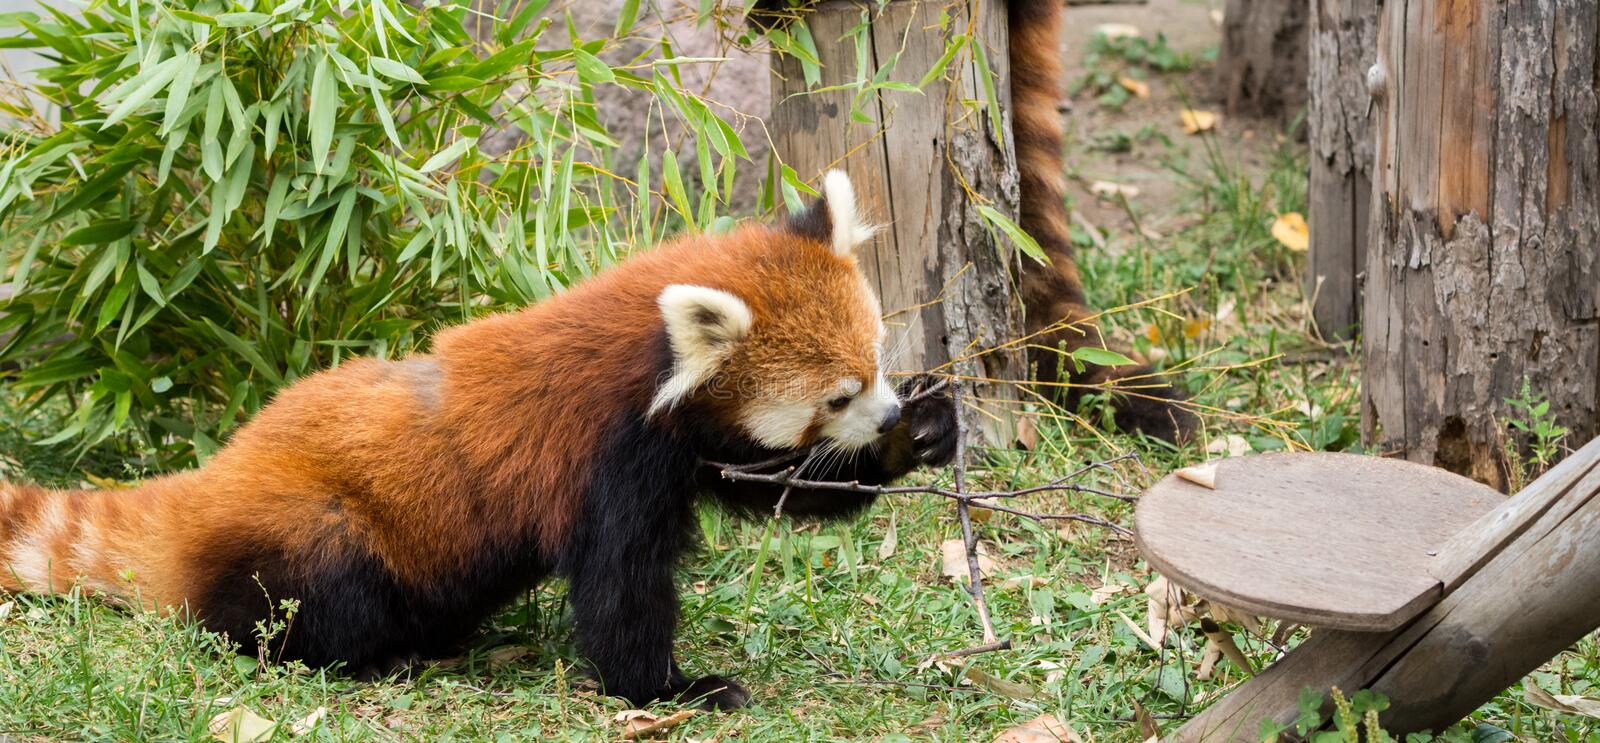 Red Panda or Lesser panda (Ailurus fulgens) gnawing a tree branch. Closeup Red Panda or Lesser panda (Ailurus fulgens) gnawing a tree branch stock photo